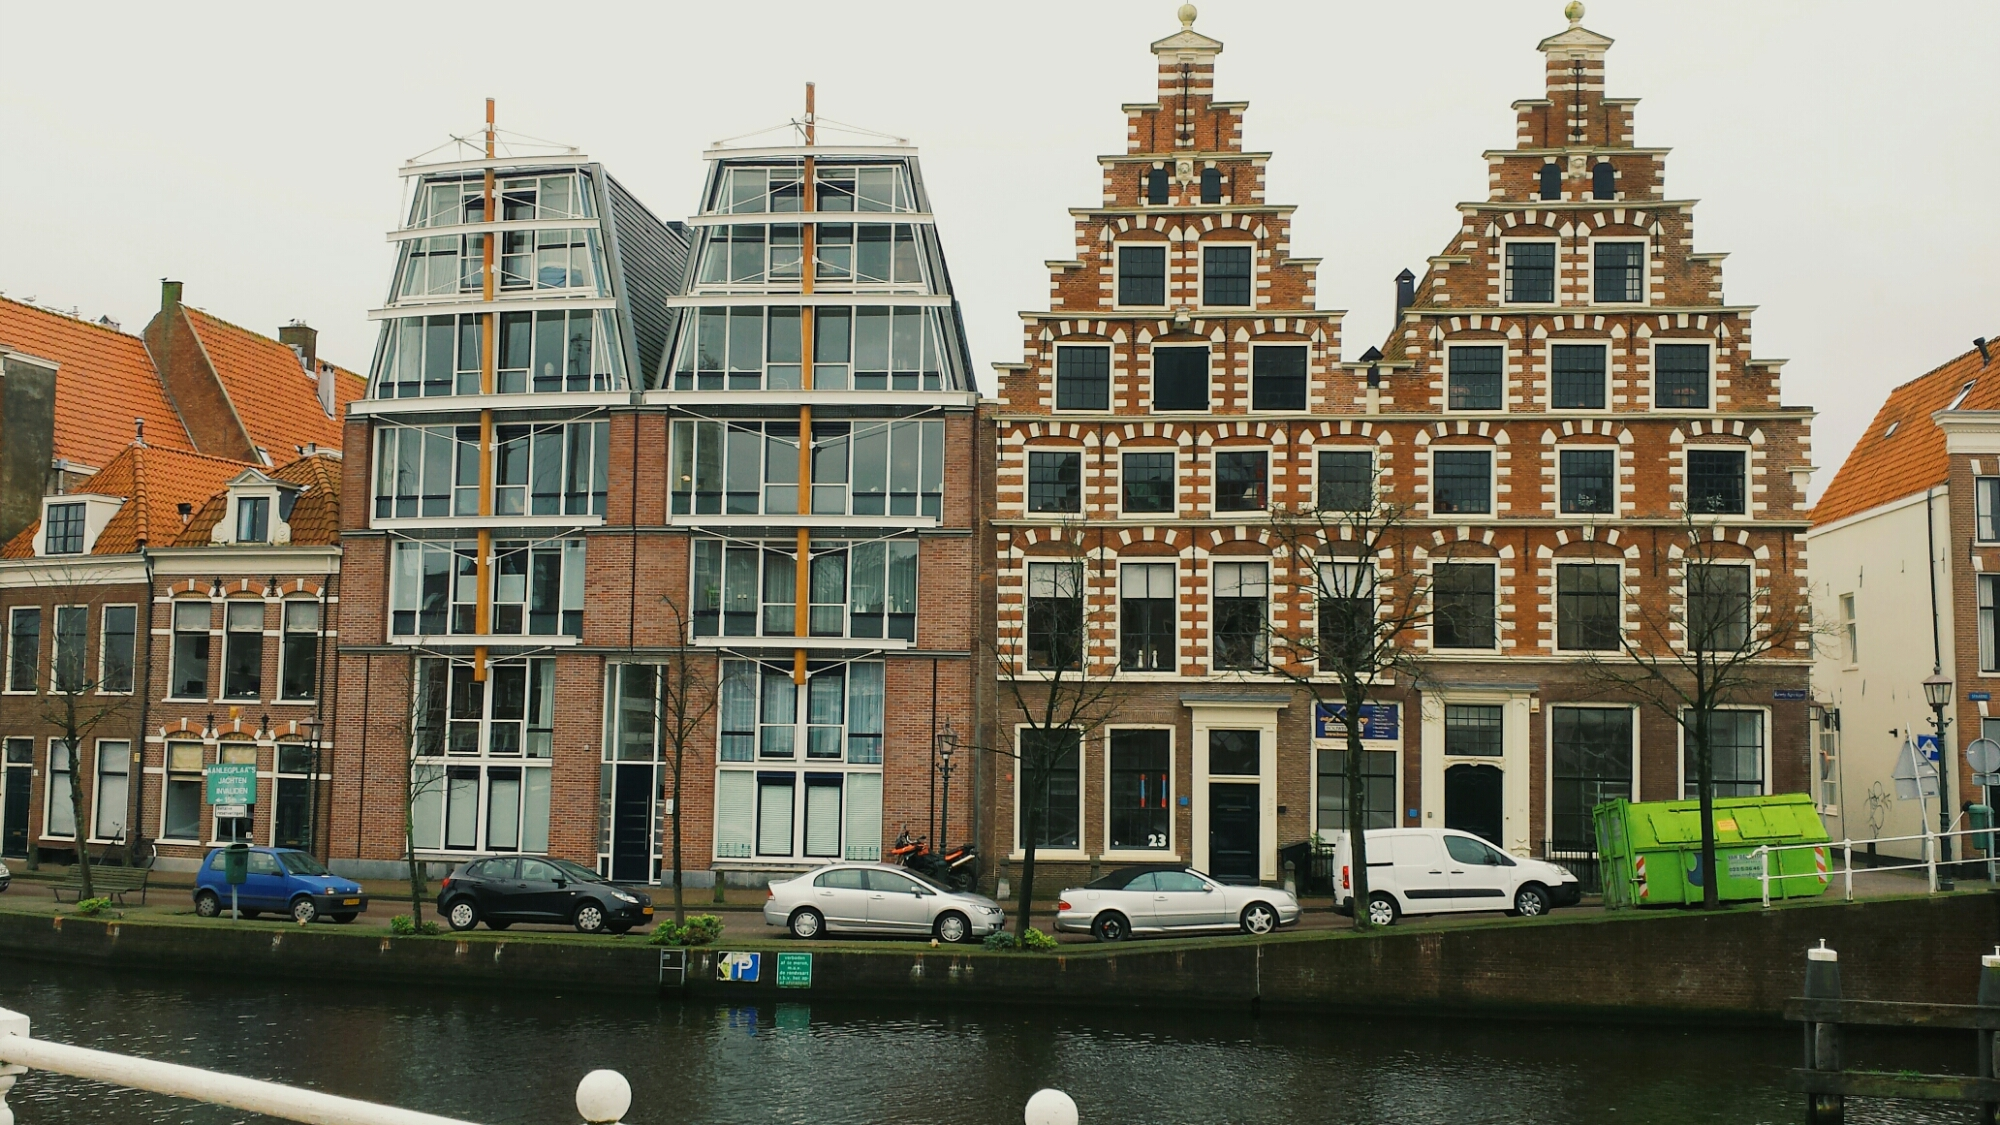 architecture dutch netherlands surely hop plane yourself experience them want